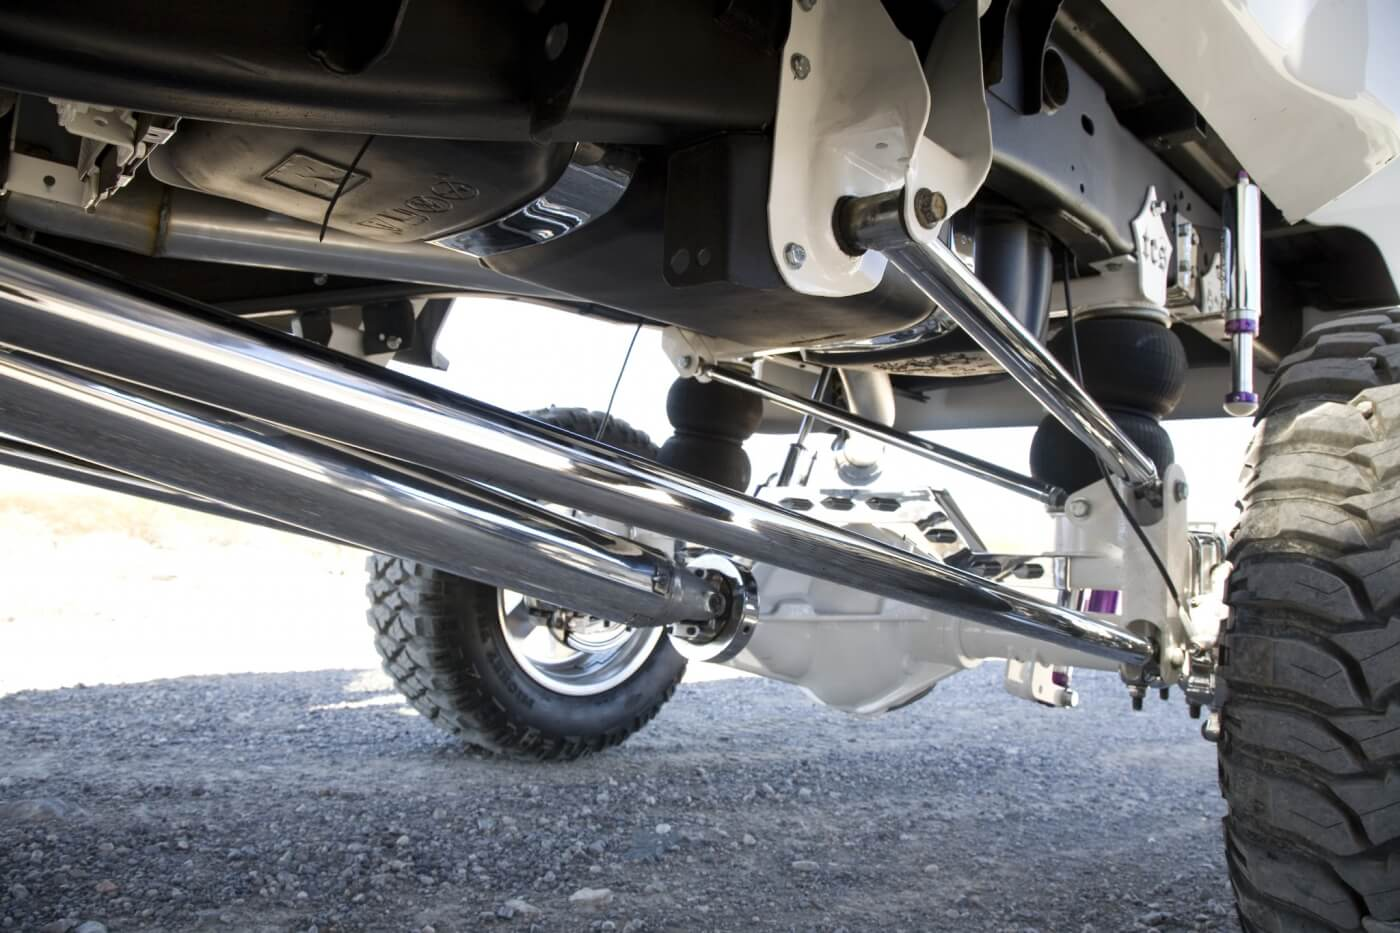 The rear suspension is also from TCS. This four-link setup uses an air bag system with King shocks and bump stops.